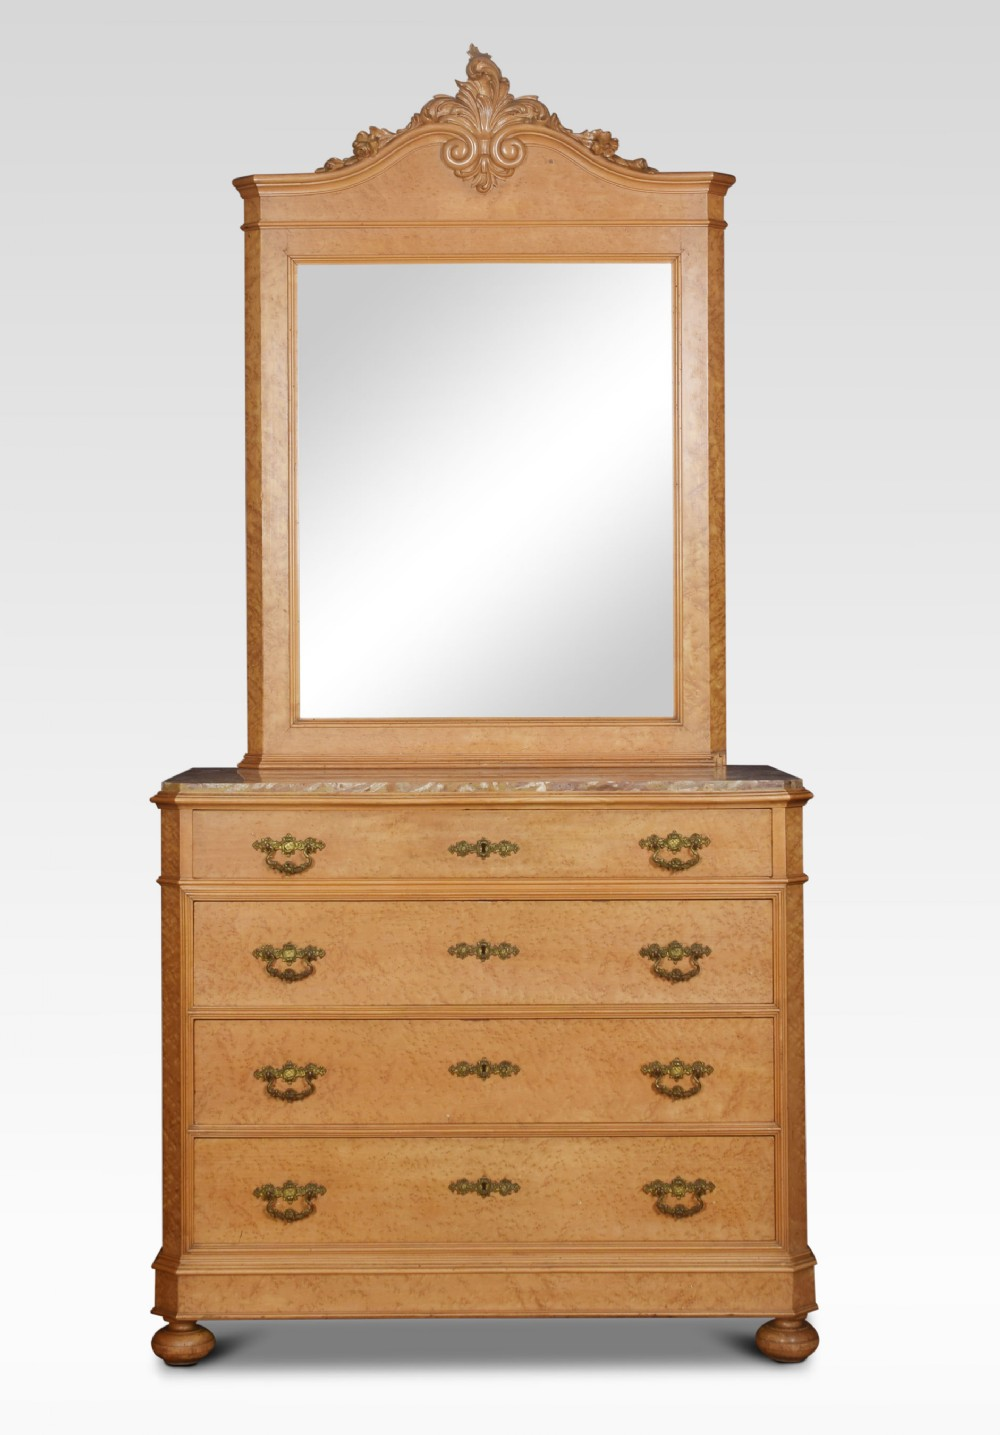 birds eye maple mirrored back chest of drawers